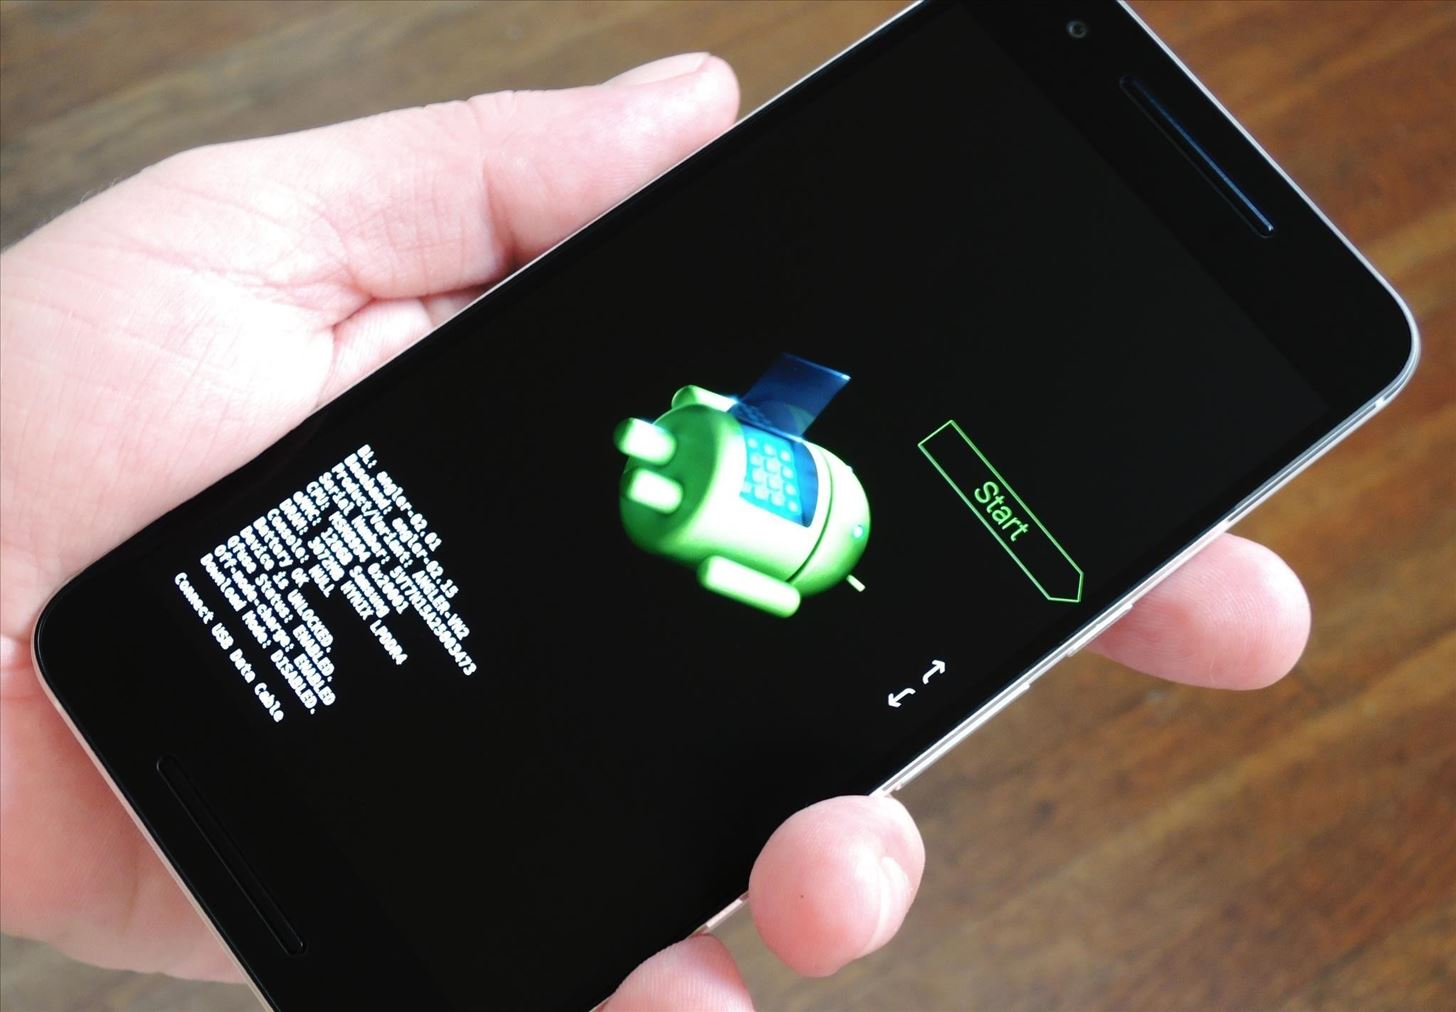 How to Root the Nexus 6P or Nexus 5X on Windows, Mac, or Linux—The Foolproof Guide